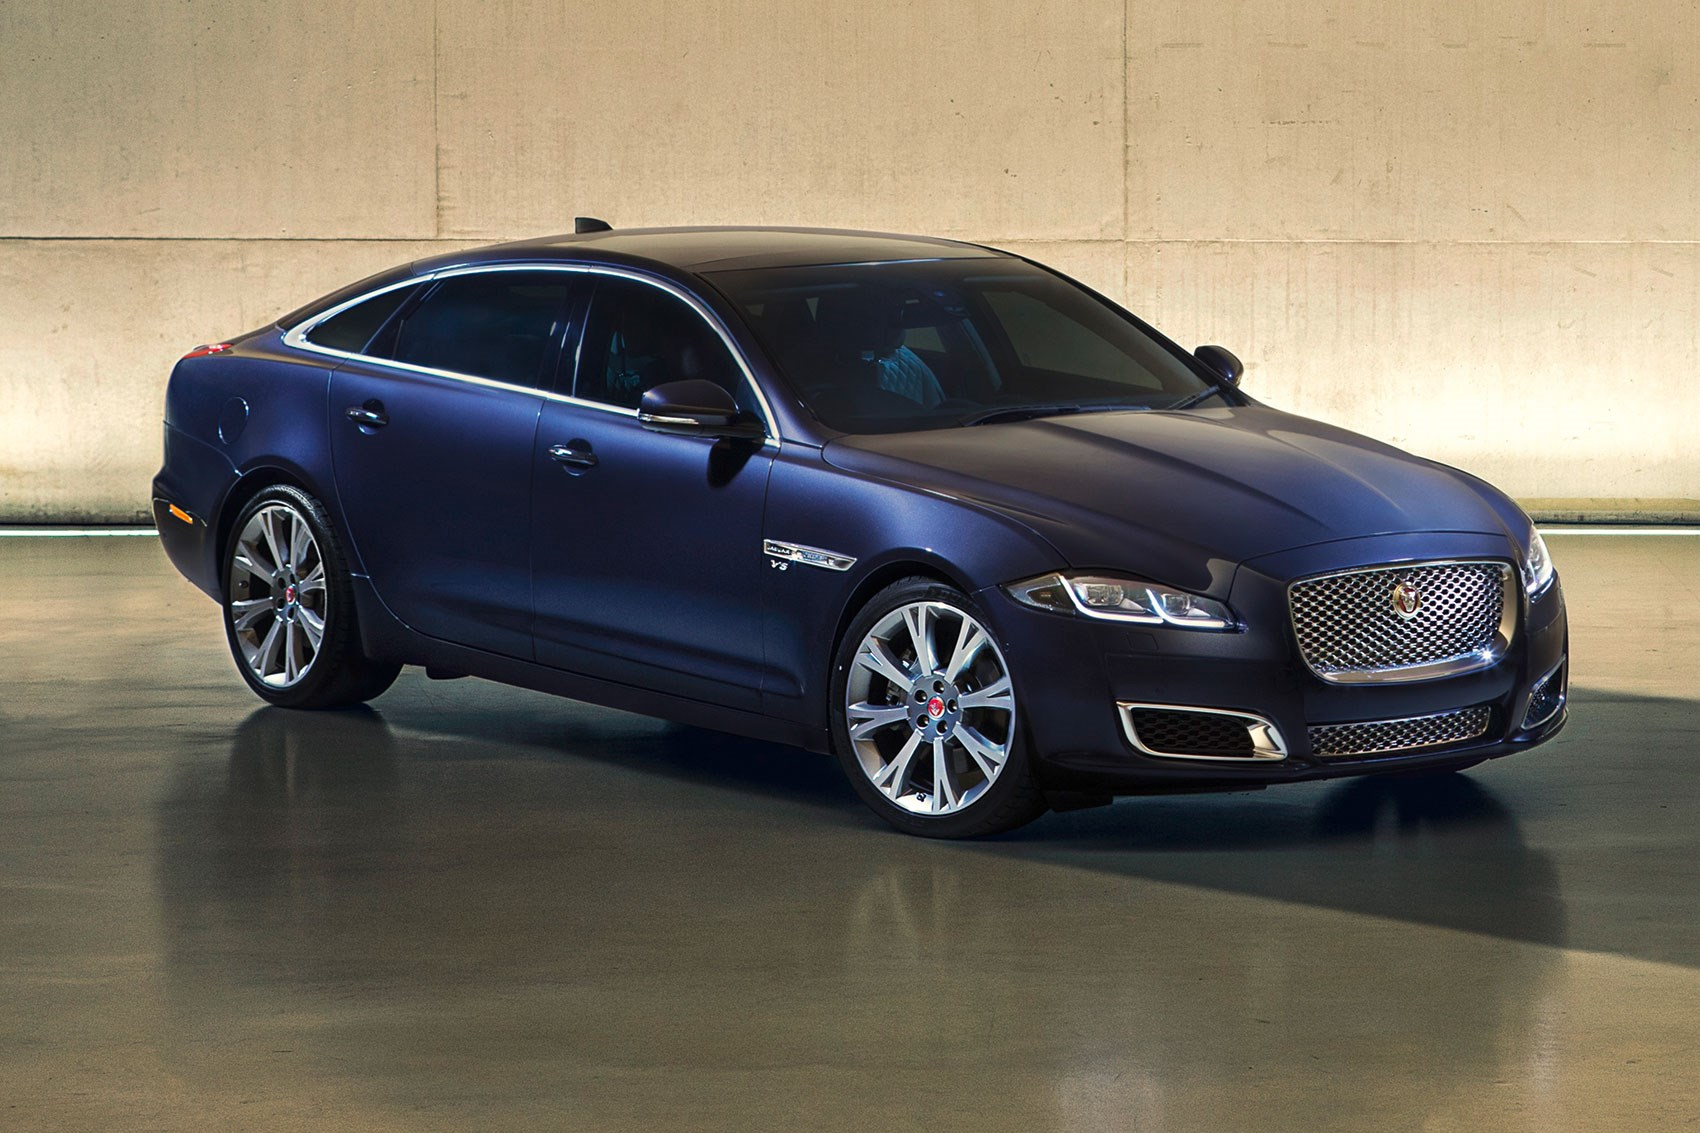 New changes to the look of the car can you guess what it is - The New Jaguar Xj In Autobiography Spec Subtle Design Changes For 2015 Jag Xj